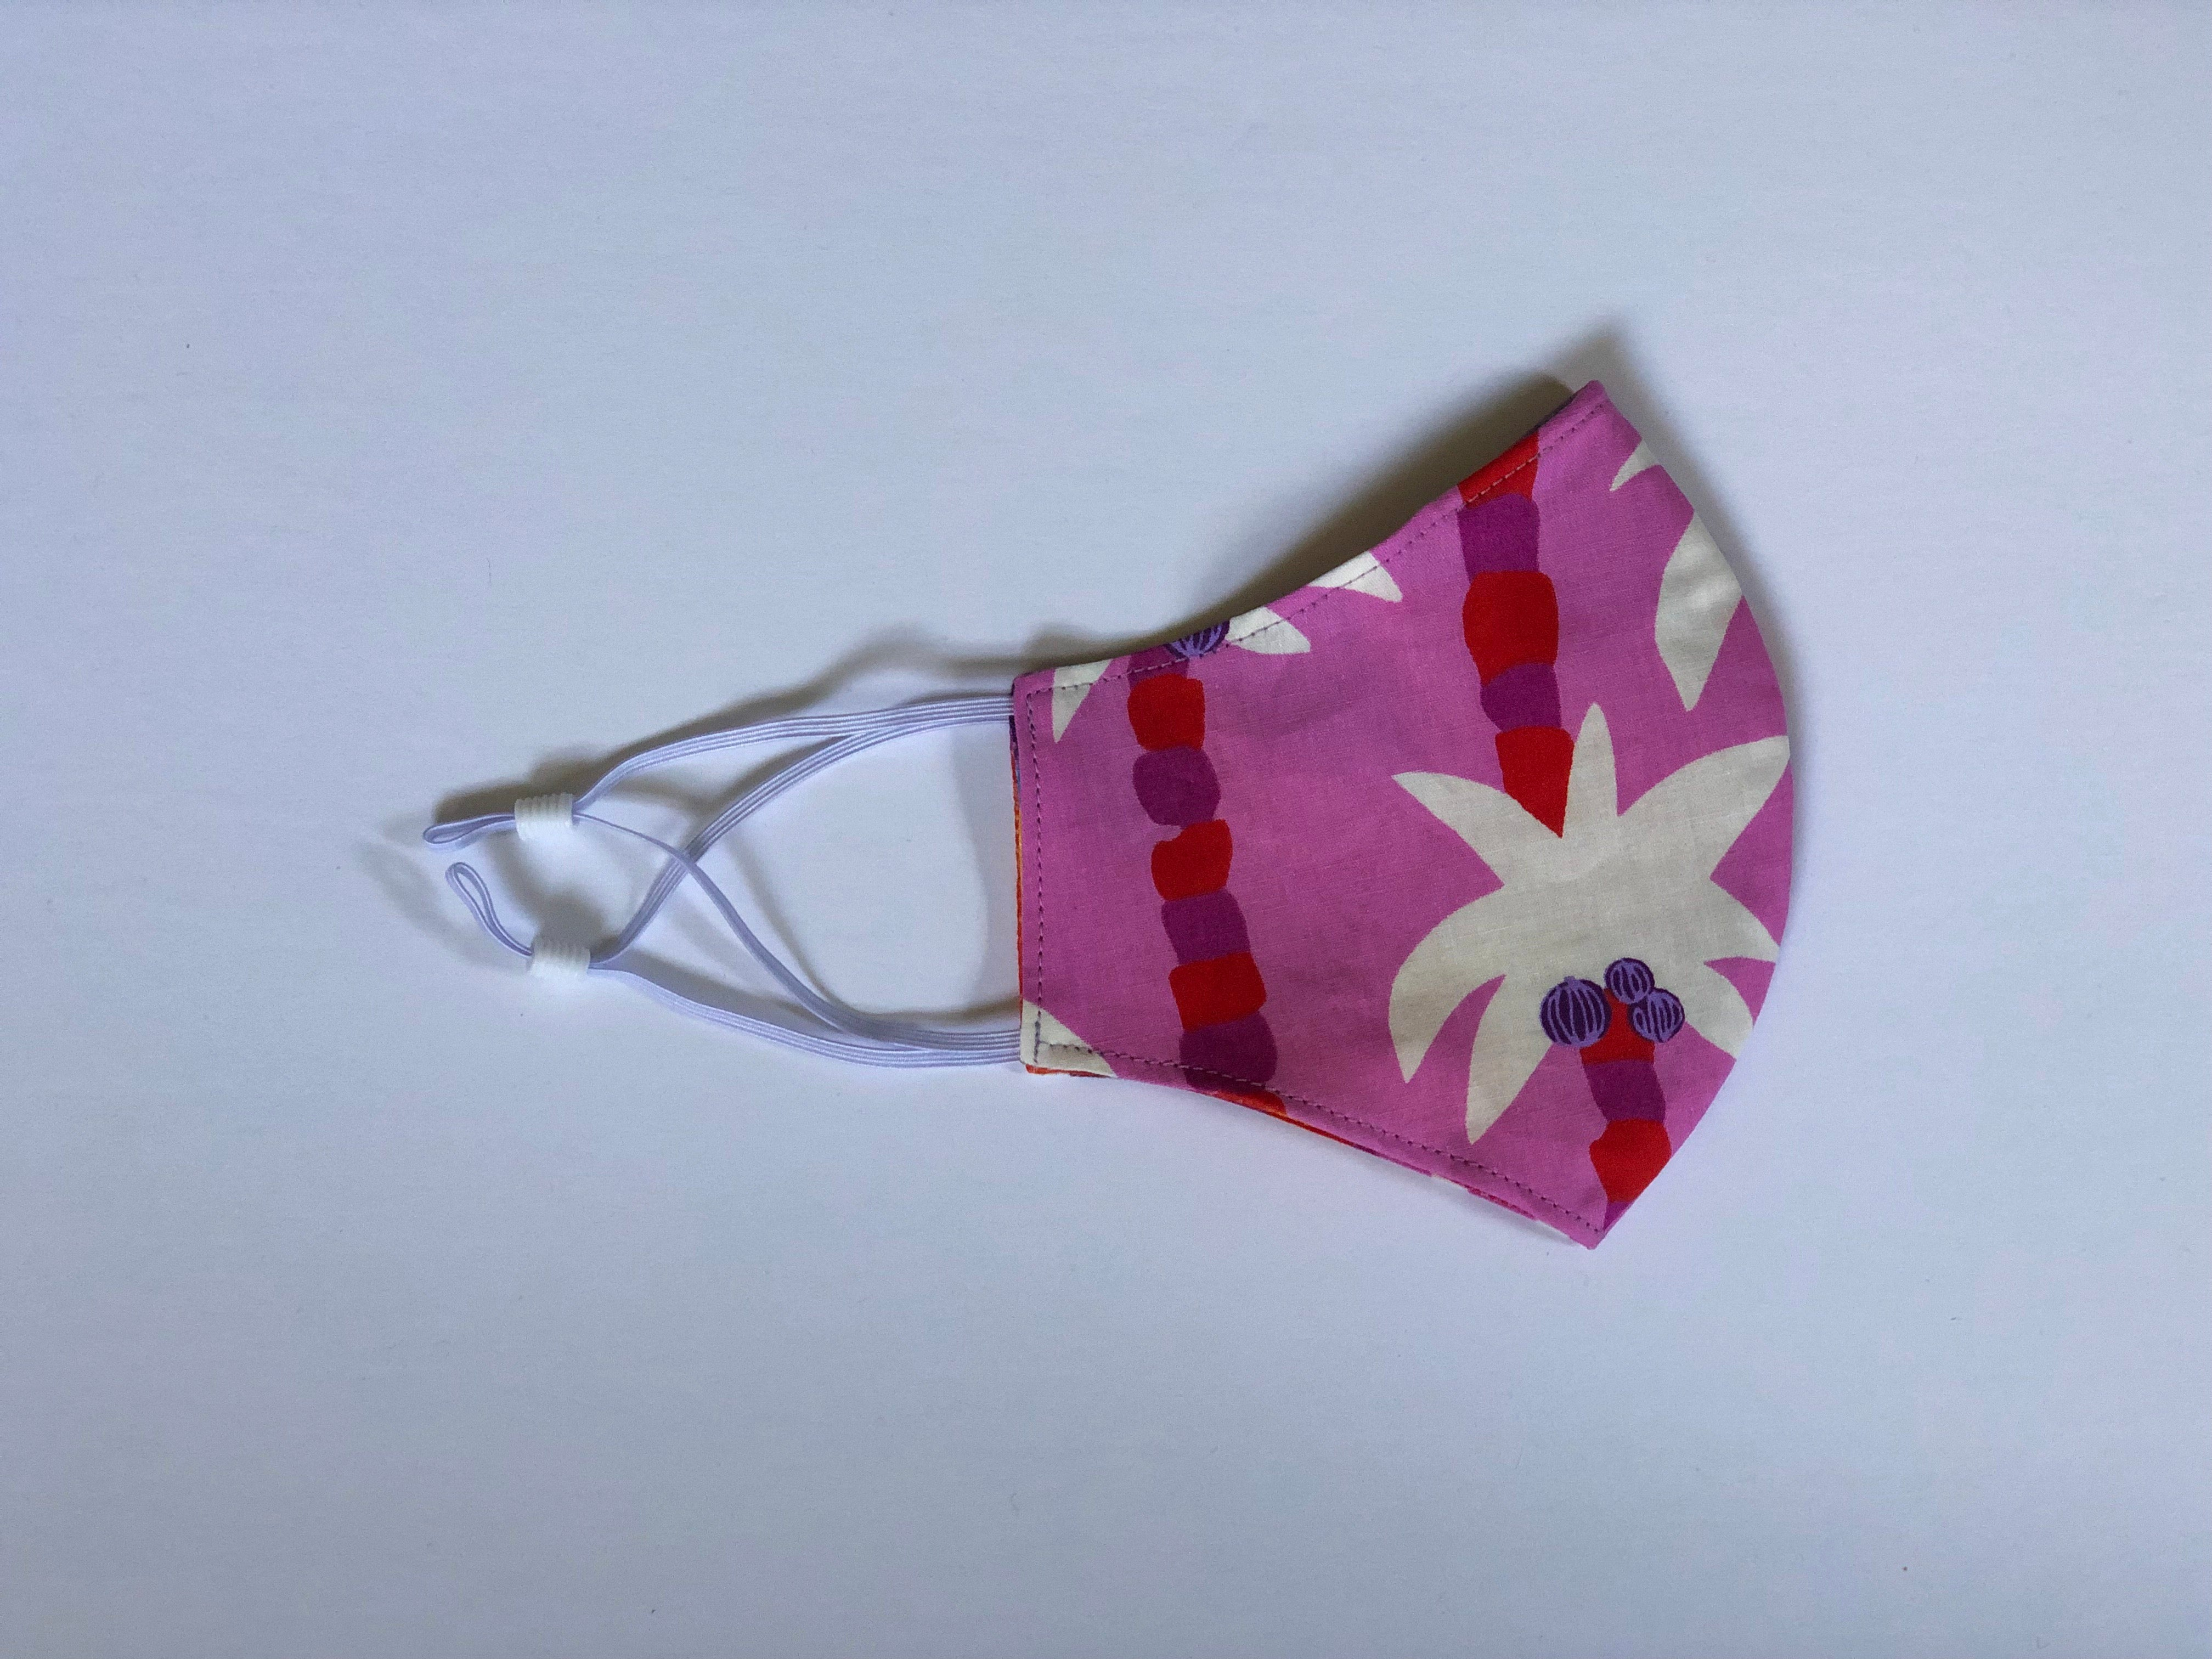 9. Pink Palms - Adjustable Ear Straps